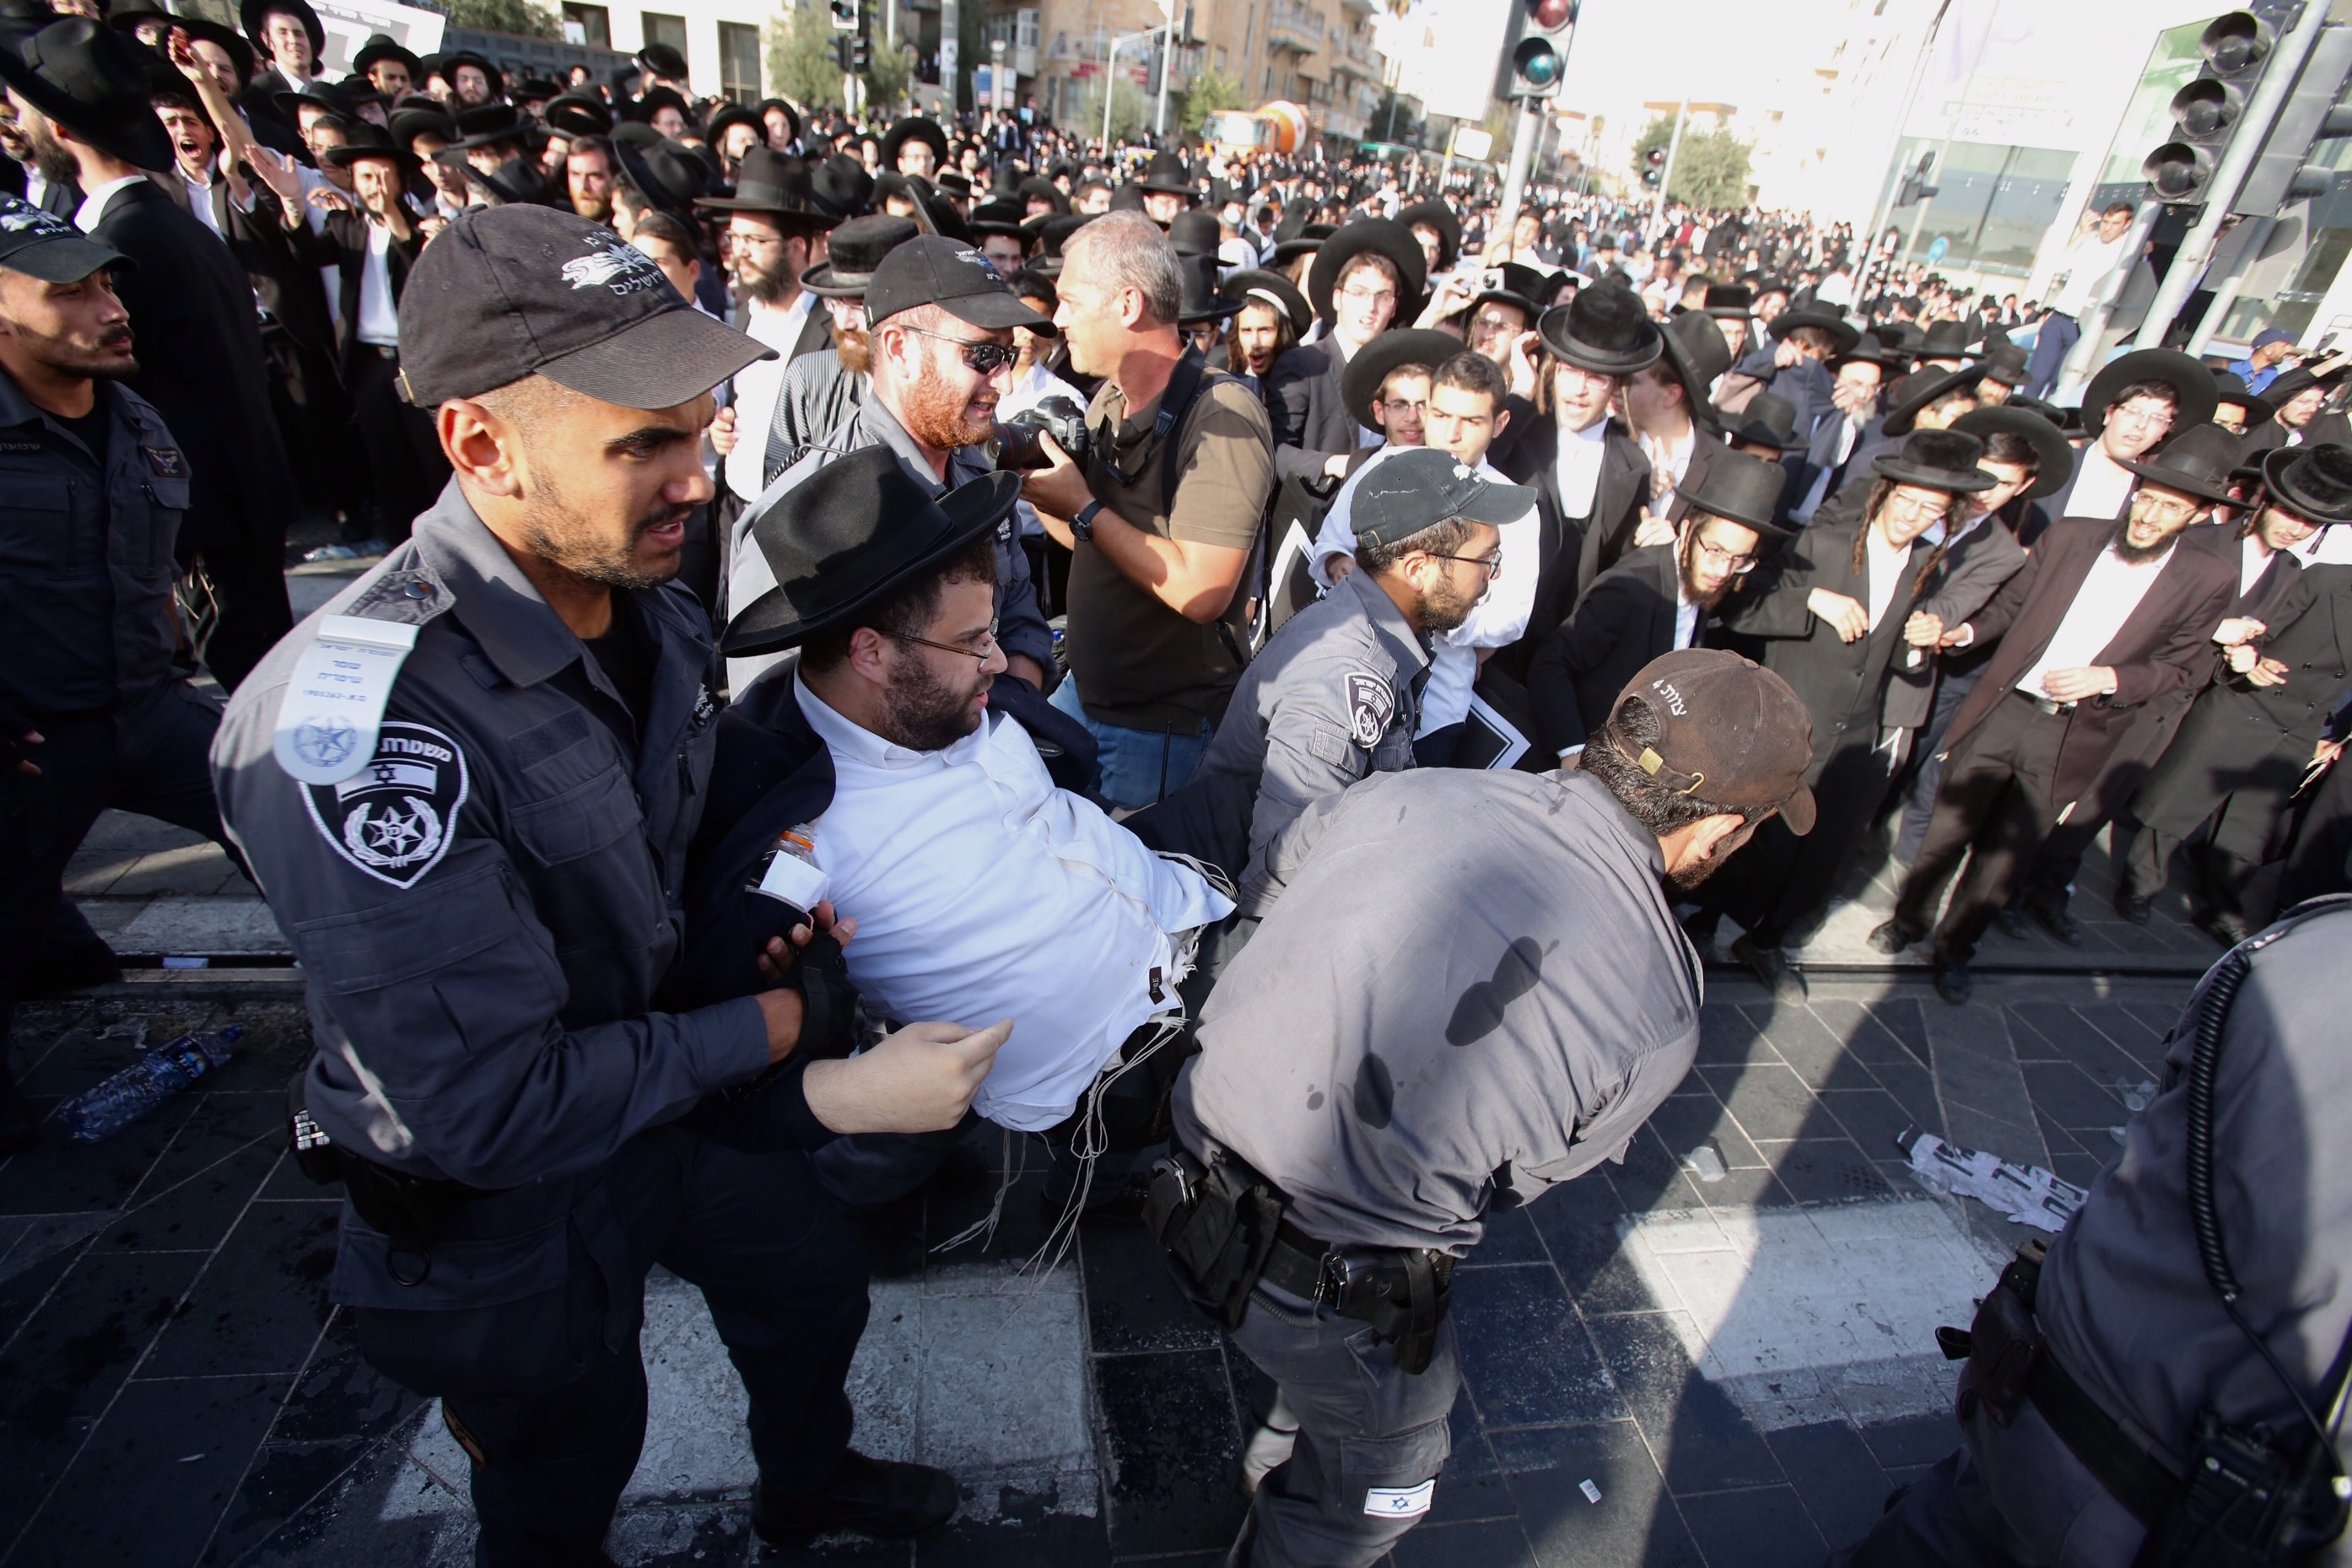 Police arrest a haredi man protesting against the drafting of ultra-Orthodox into the IDF, October 2017 (MARC ISRAEL SELLEM/THE JERUSALEM POST)